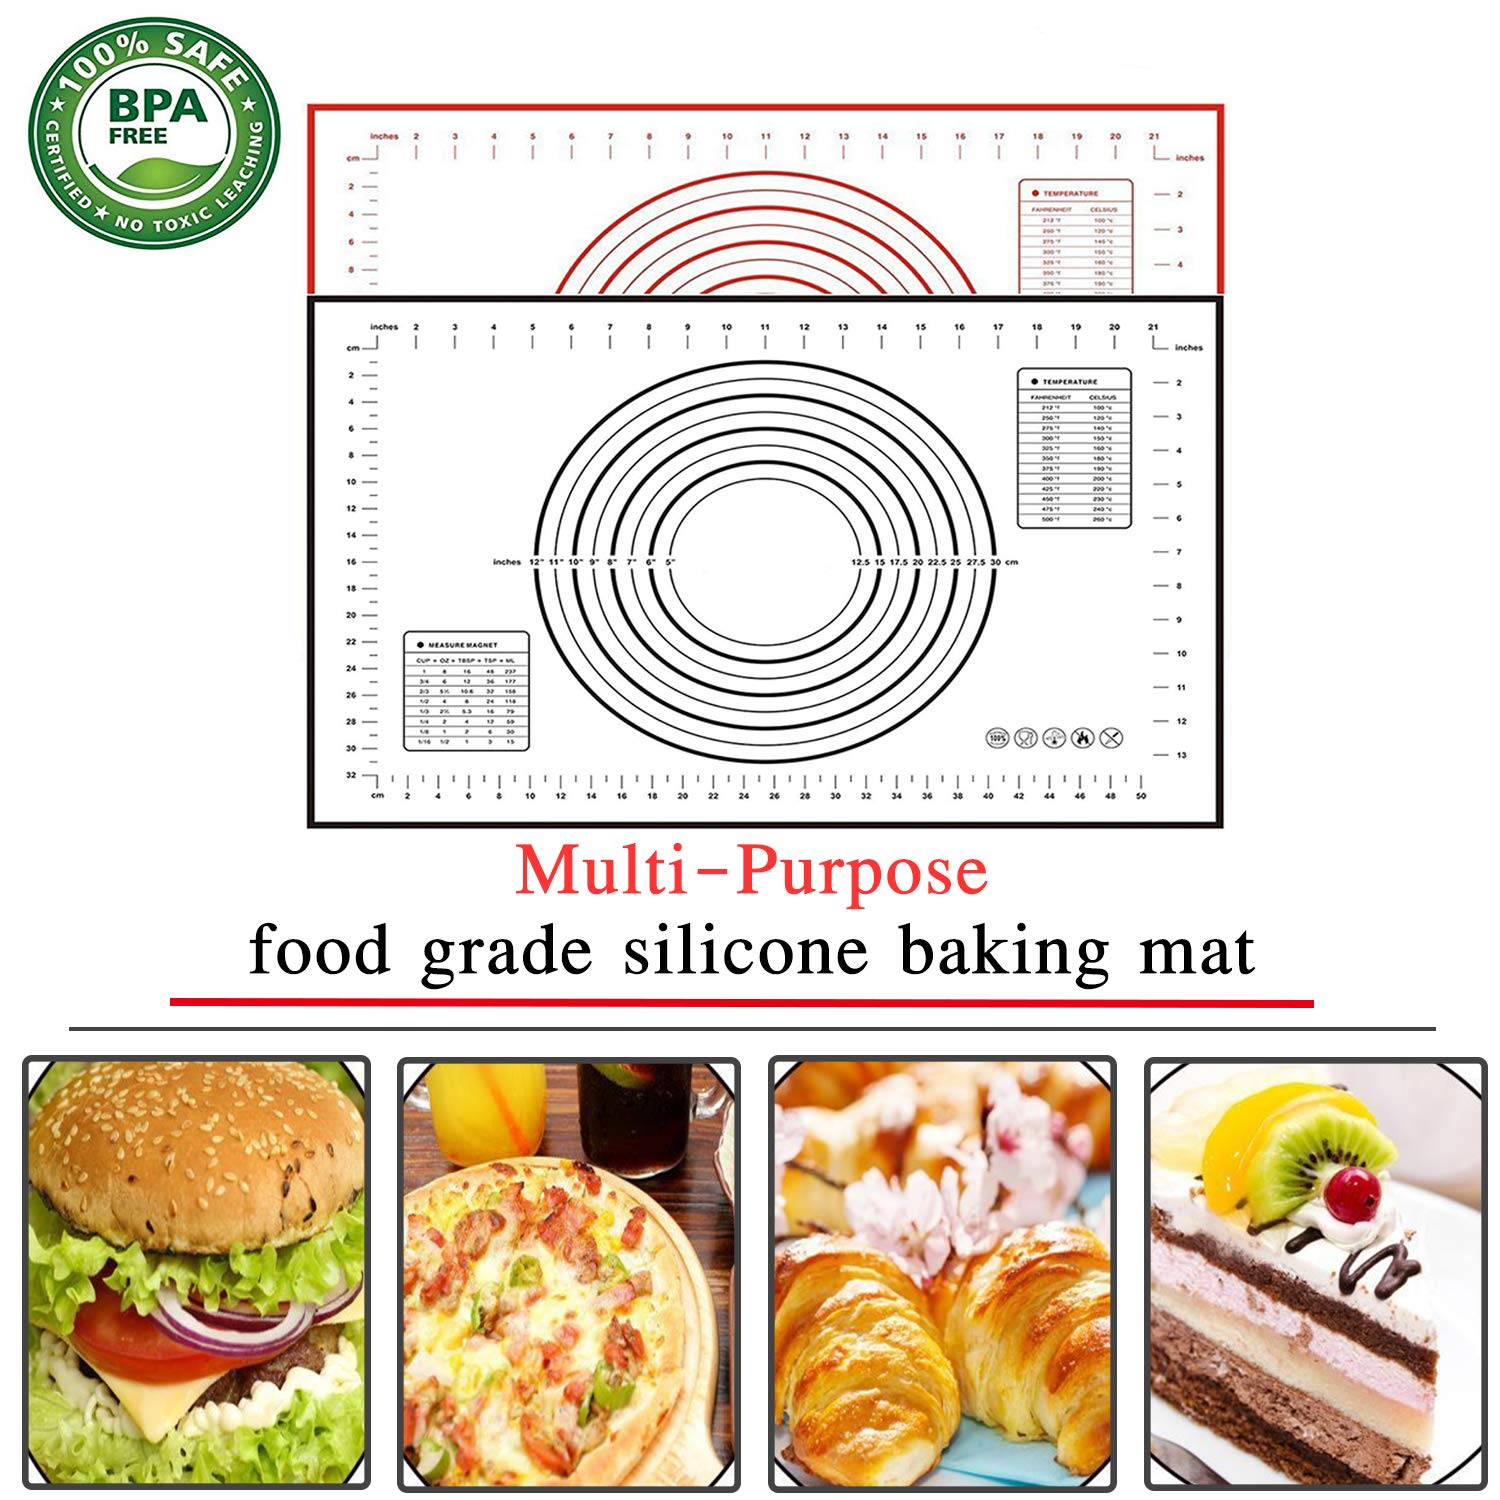 Large Pastry Rolling Mat with Measurements Non-Stick,Reusable Kitchen Cooking Mat BPA Free,for Pizza Dishwasher Safe Breads Silicone Baking Mats Set of 2 Fondant 15.8 x 19.7 Cookie Dough